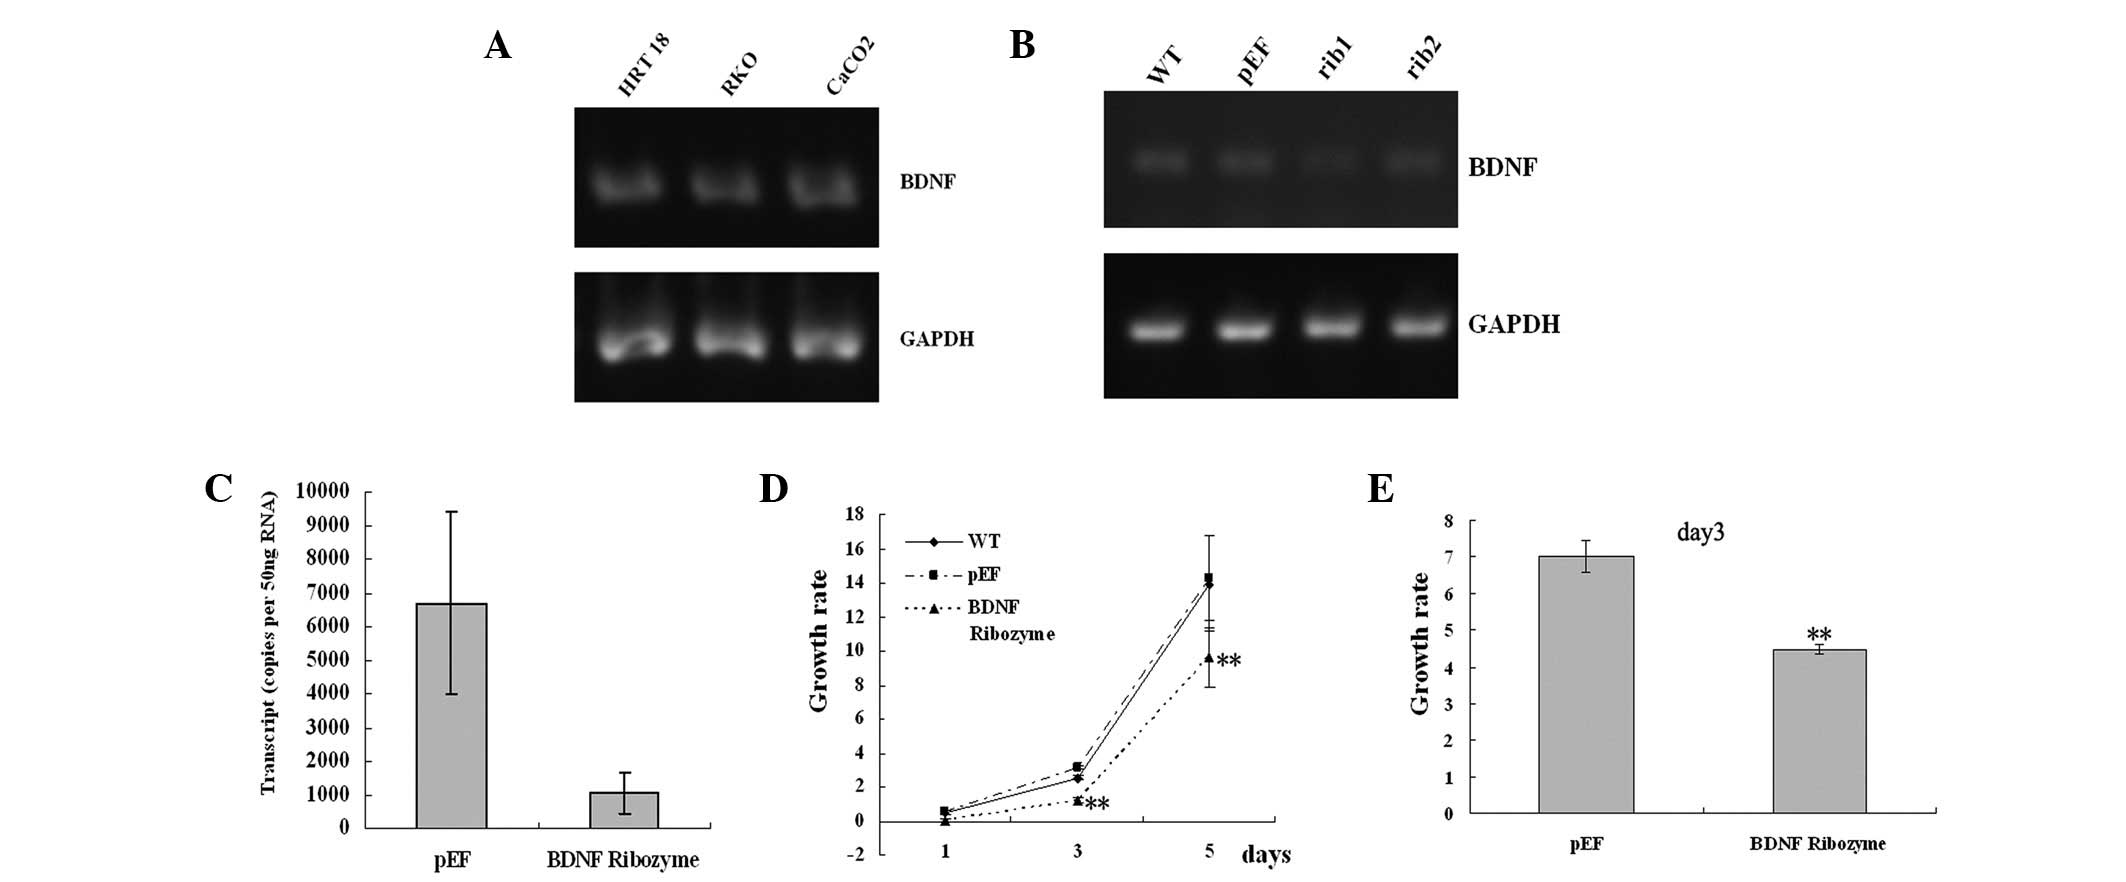 Biological Influence Of Brain Derived Neurotrophic Factor Bdnf On Colon Cancer Cells